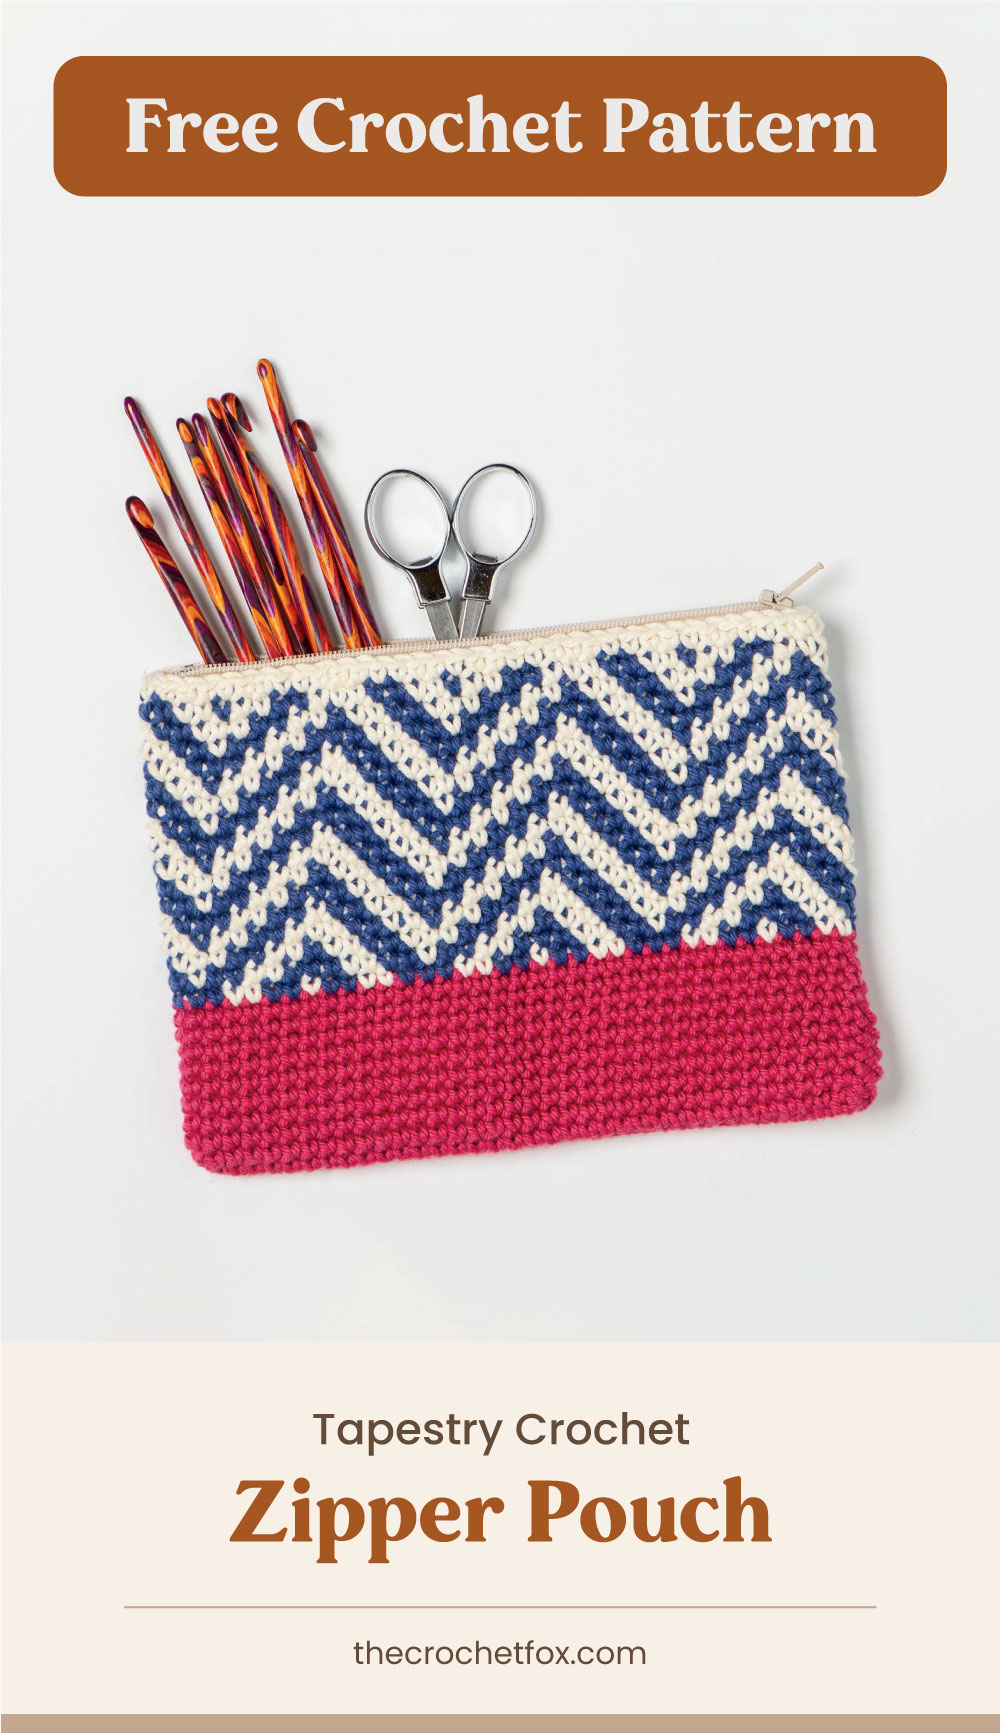 """Text area which says """"Free Crochet Pattern"""" next to a red and blue crocheted pouch containing crochet hooks and a pair of scissors followed by another text area which says """"Tapestry Zipper Pouch, thecrochetfox.com"""""""